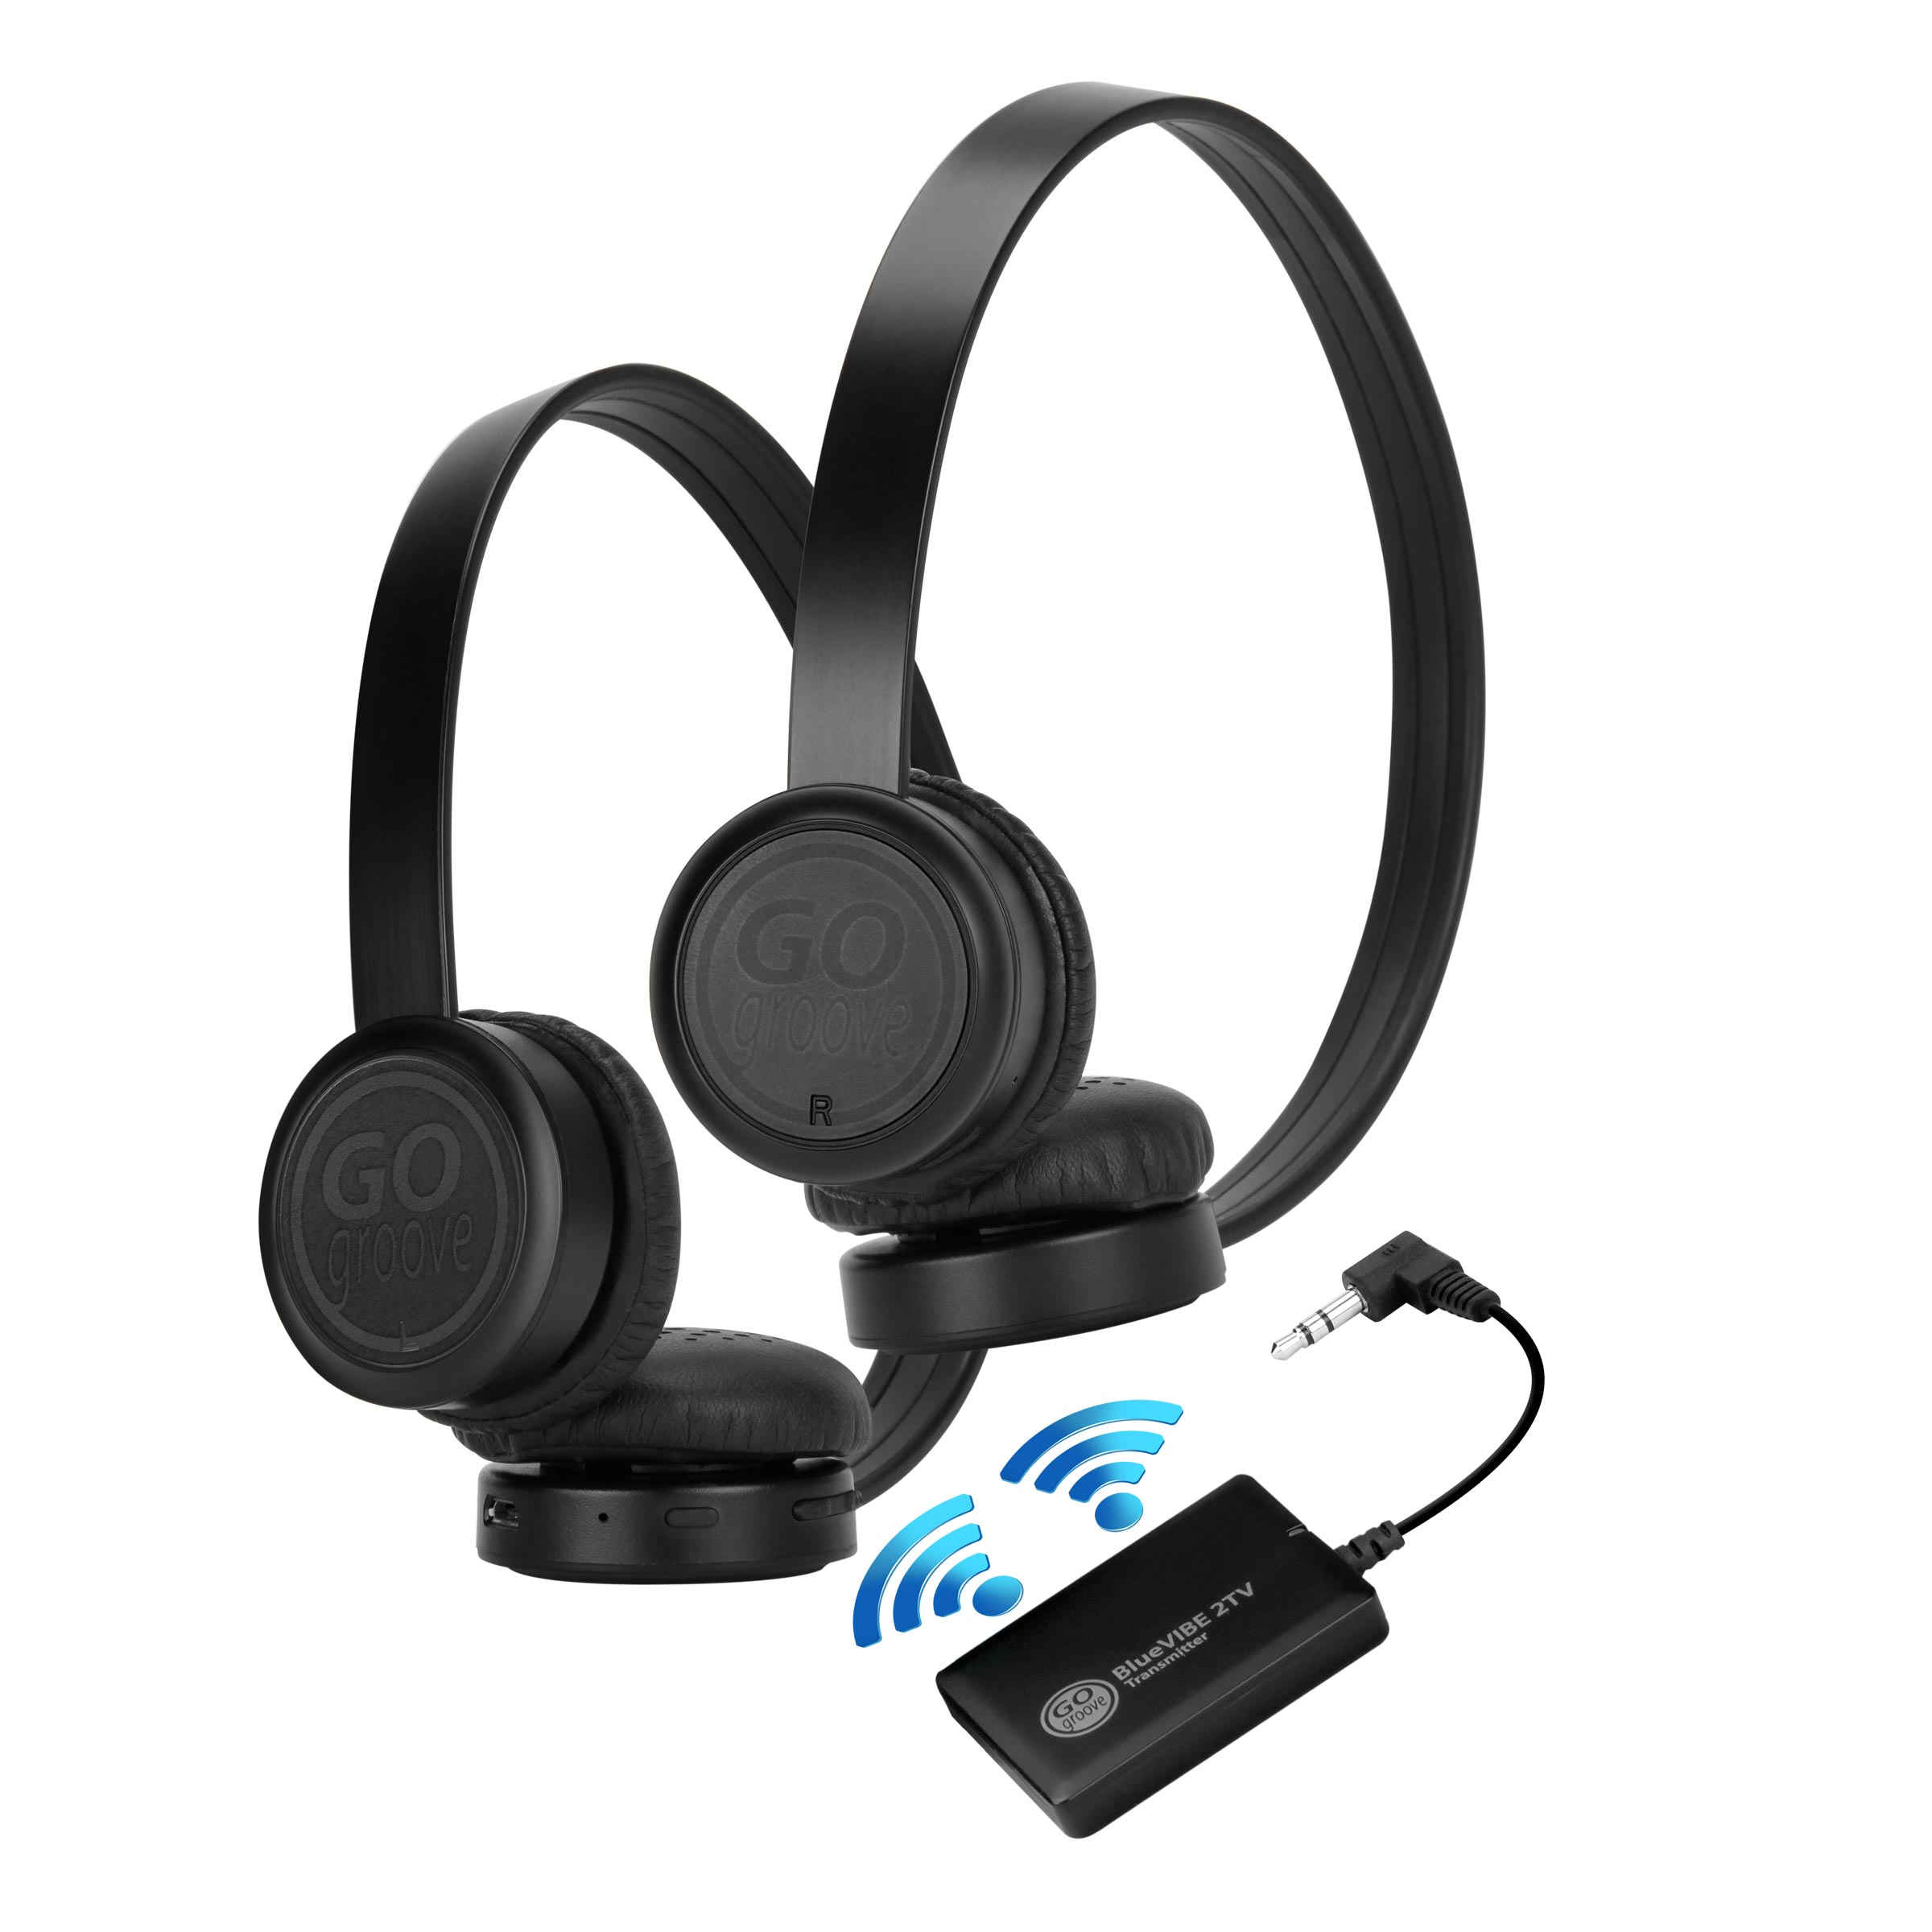 Bluetooth Wireless Headset Walmart: Wireless Dual Headset Bluetooth TV Connection Kit With Leather Ear Cups 637836592173